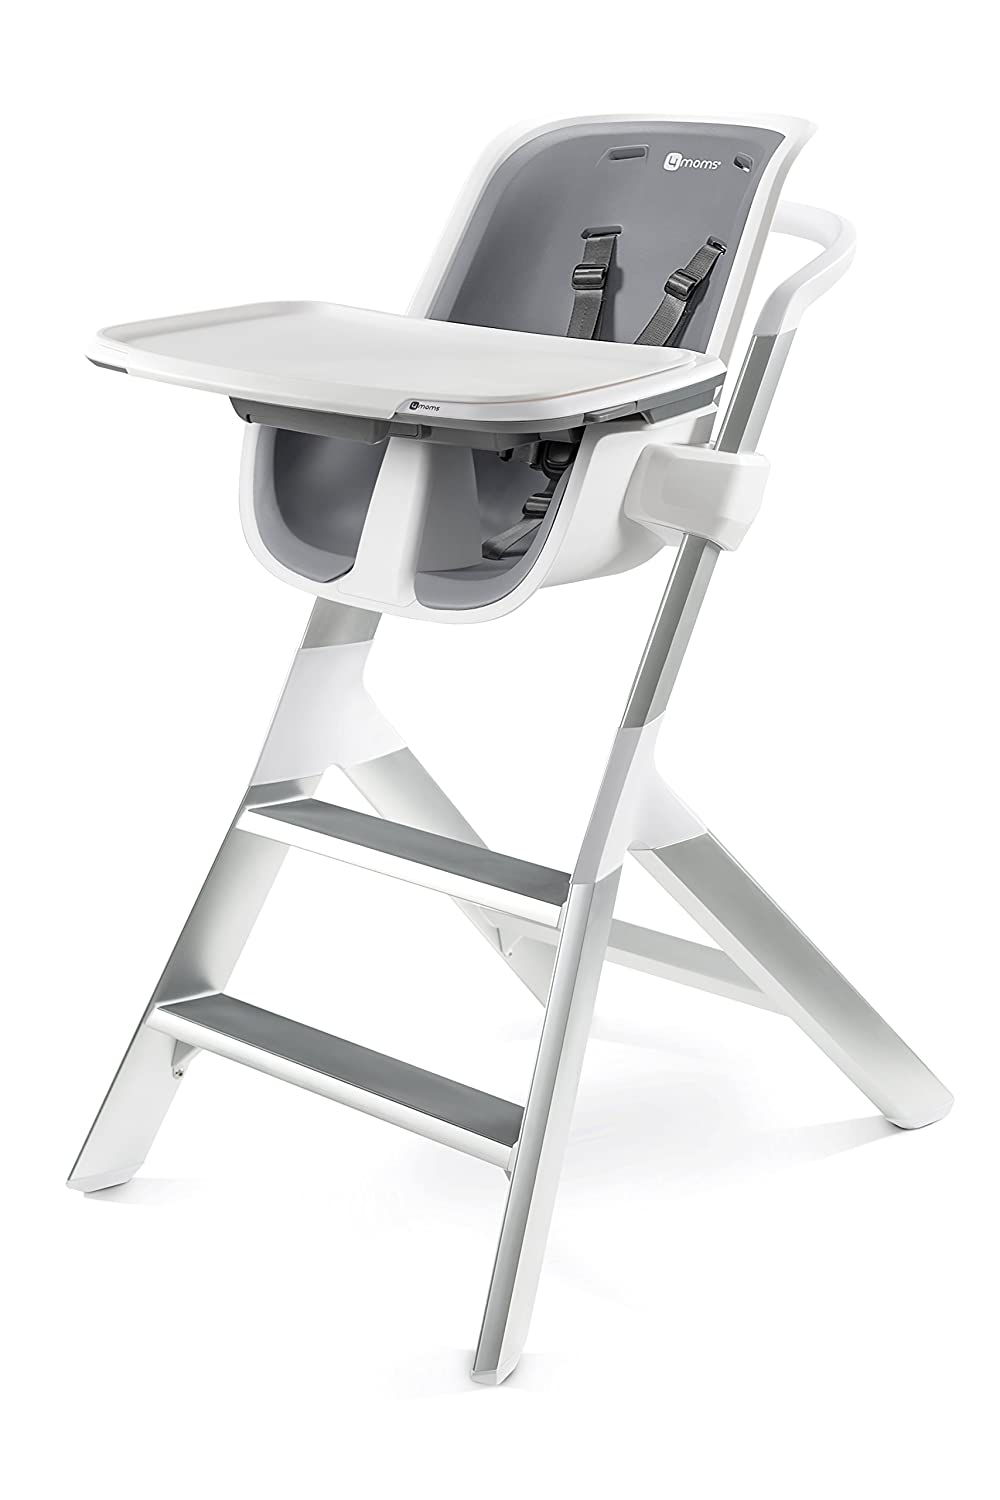 Amazon.com  4moms high Chair - Easy to Clean with Magnetic one-Handed Tray Attachment  Baby  sc 1 st  Amazon.com & Amazon.com : 4moms high Chair - Easy to Clean with Magnetic one ...